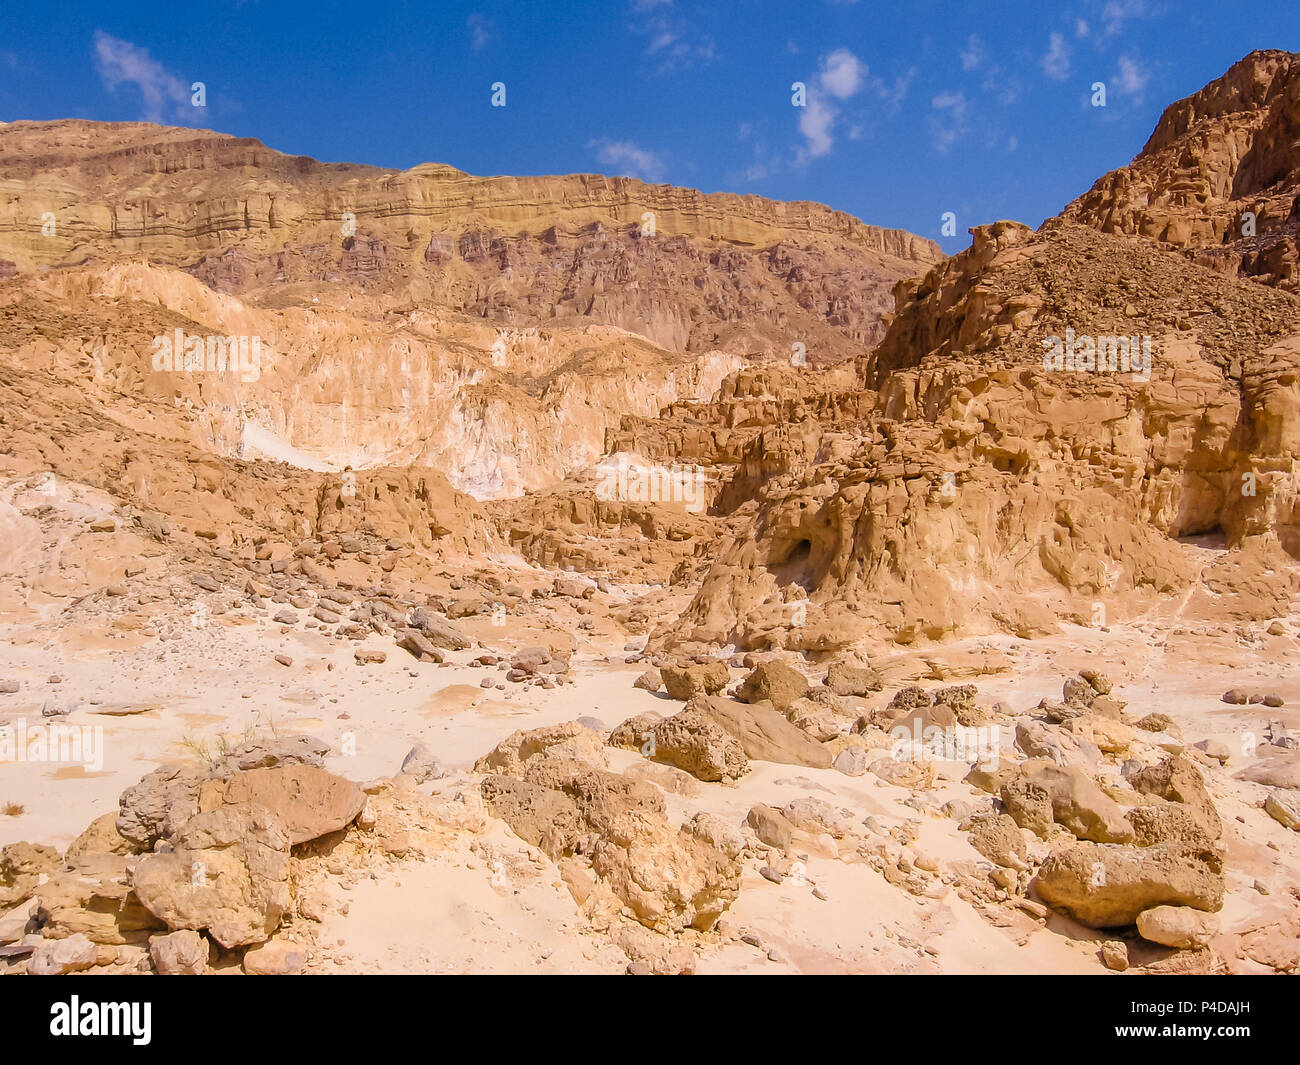 Aerial view of spectacular gorge of Colored Canyon, near Mount Sinai and Nuweiba, Sinai Peninsula in Egypt. - Stock Image